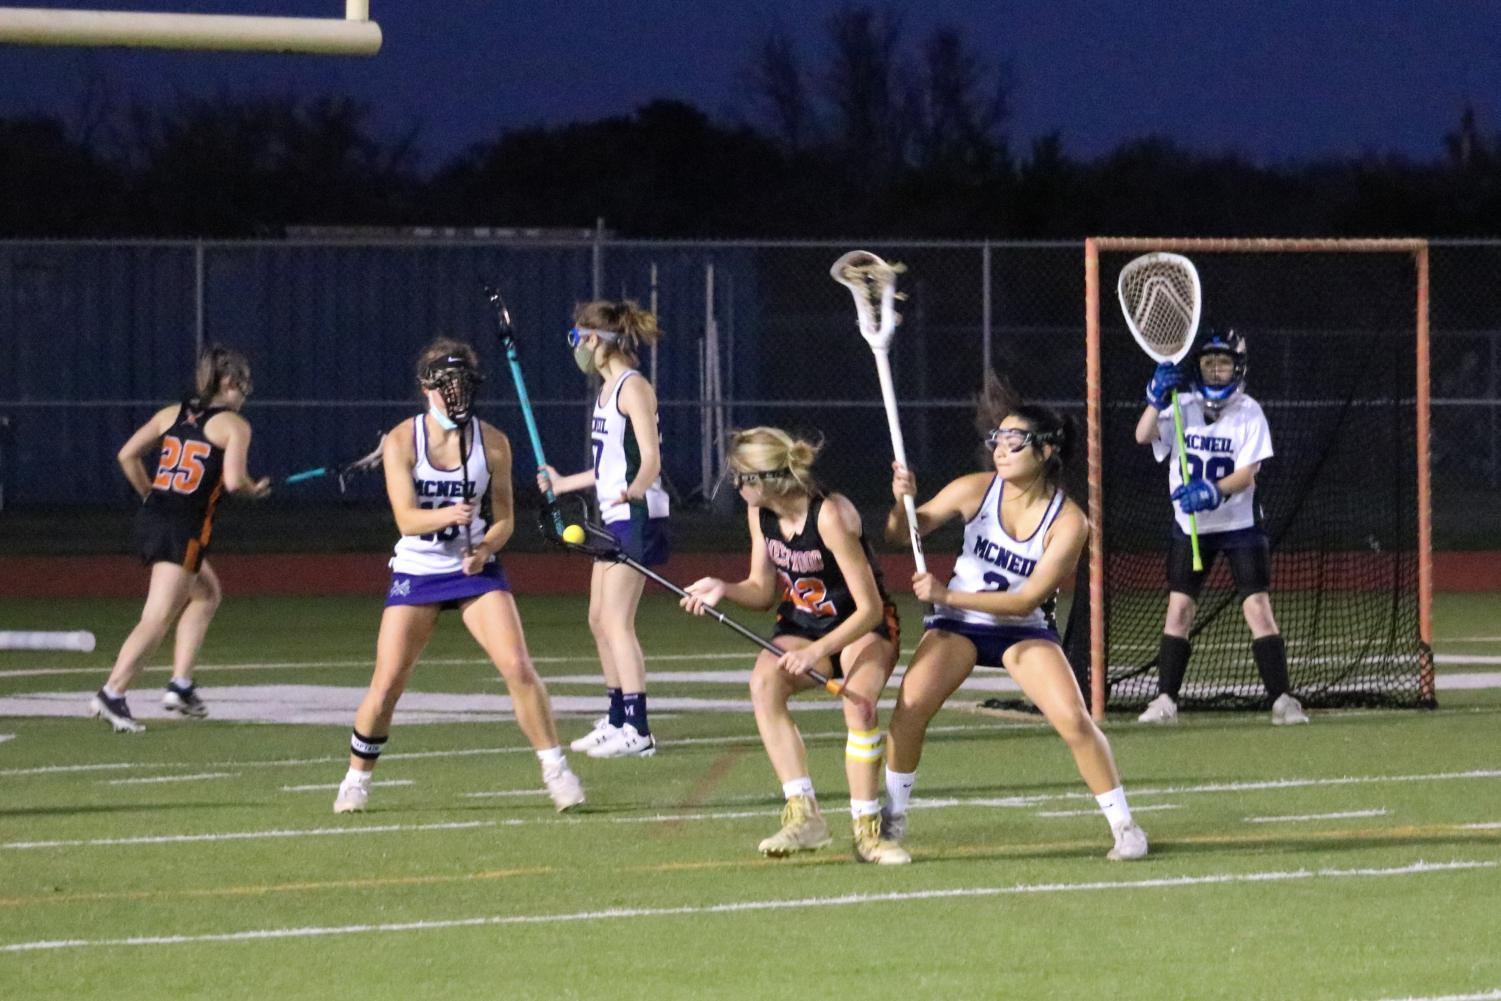 GALLERY%3A+Varsity+Womens%27+Lacrosse+Falls+to+McNeil+12-8